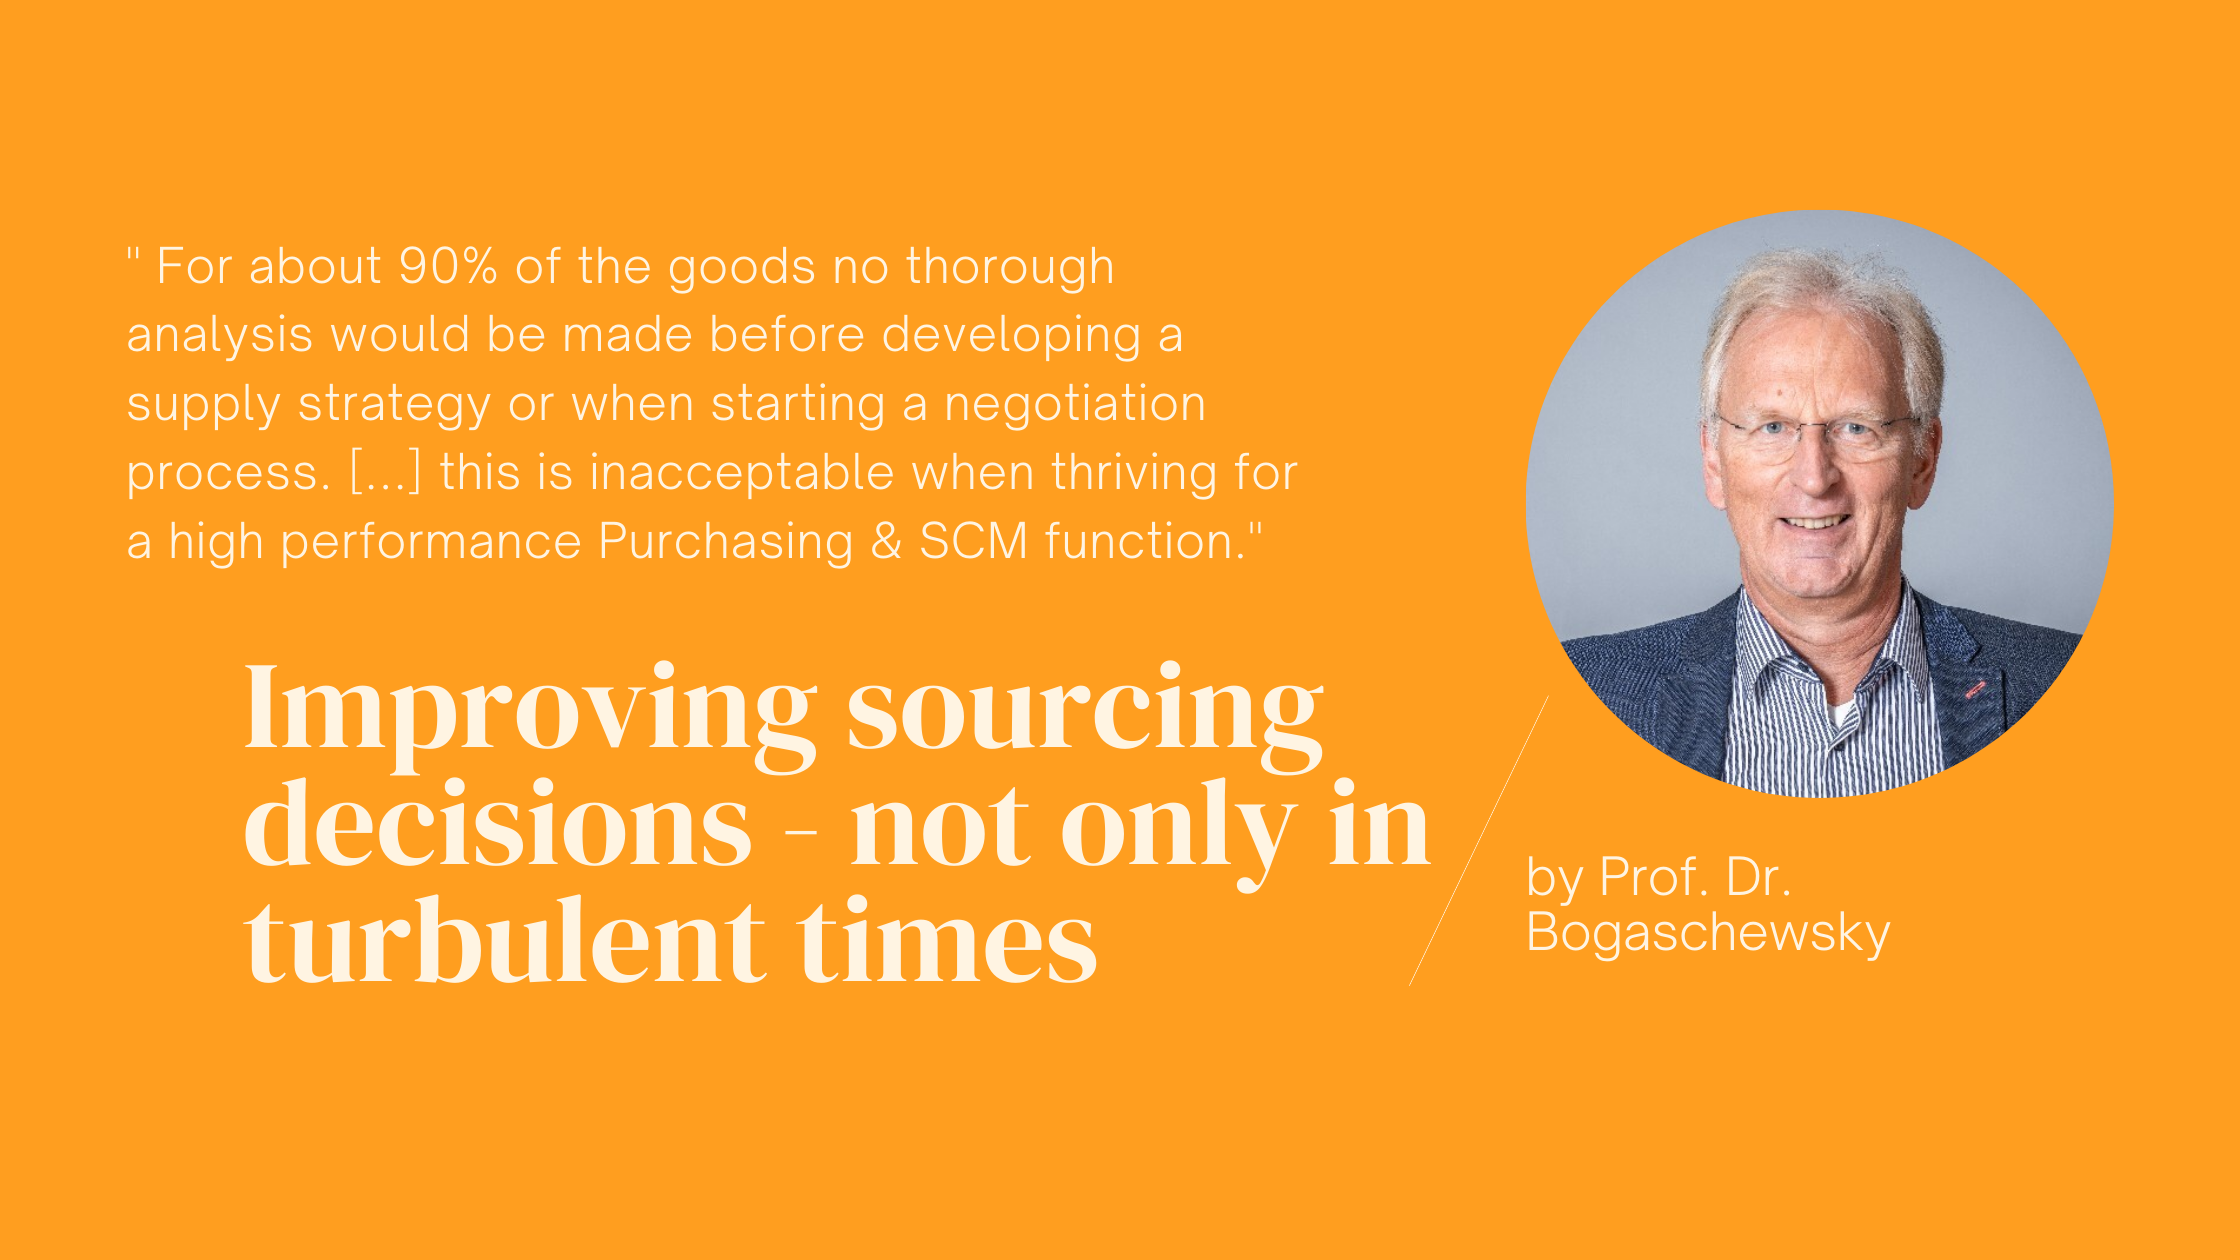 Improving sourcing decisions – not only in turbulent times